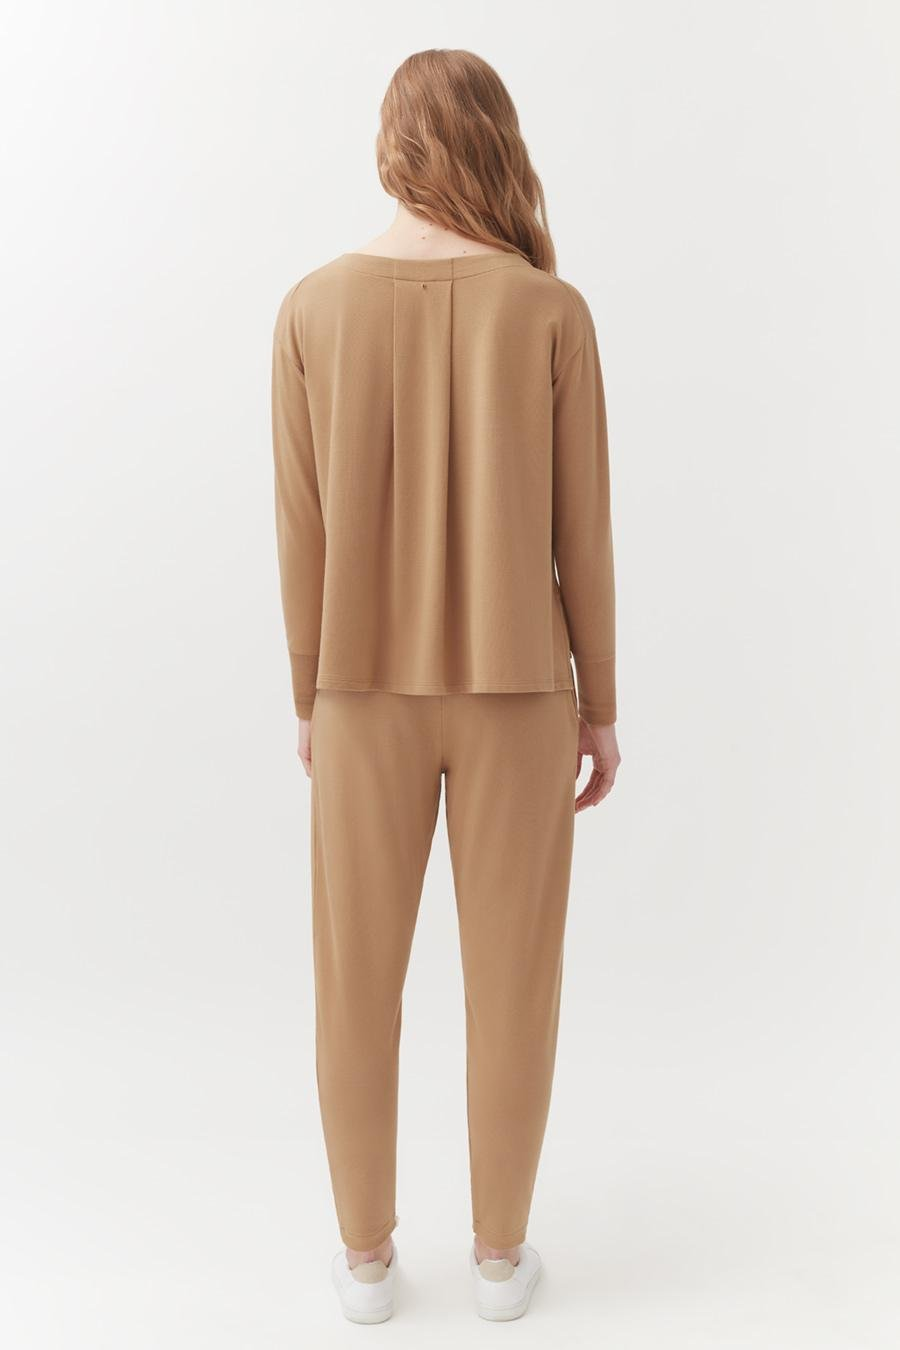 Women's French Terry Pleated Front Pant in Camel   Size: 2